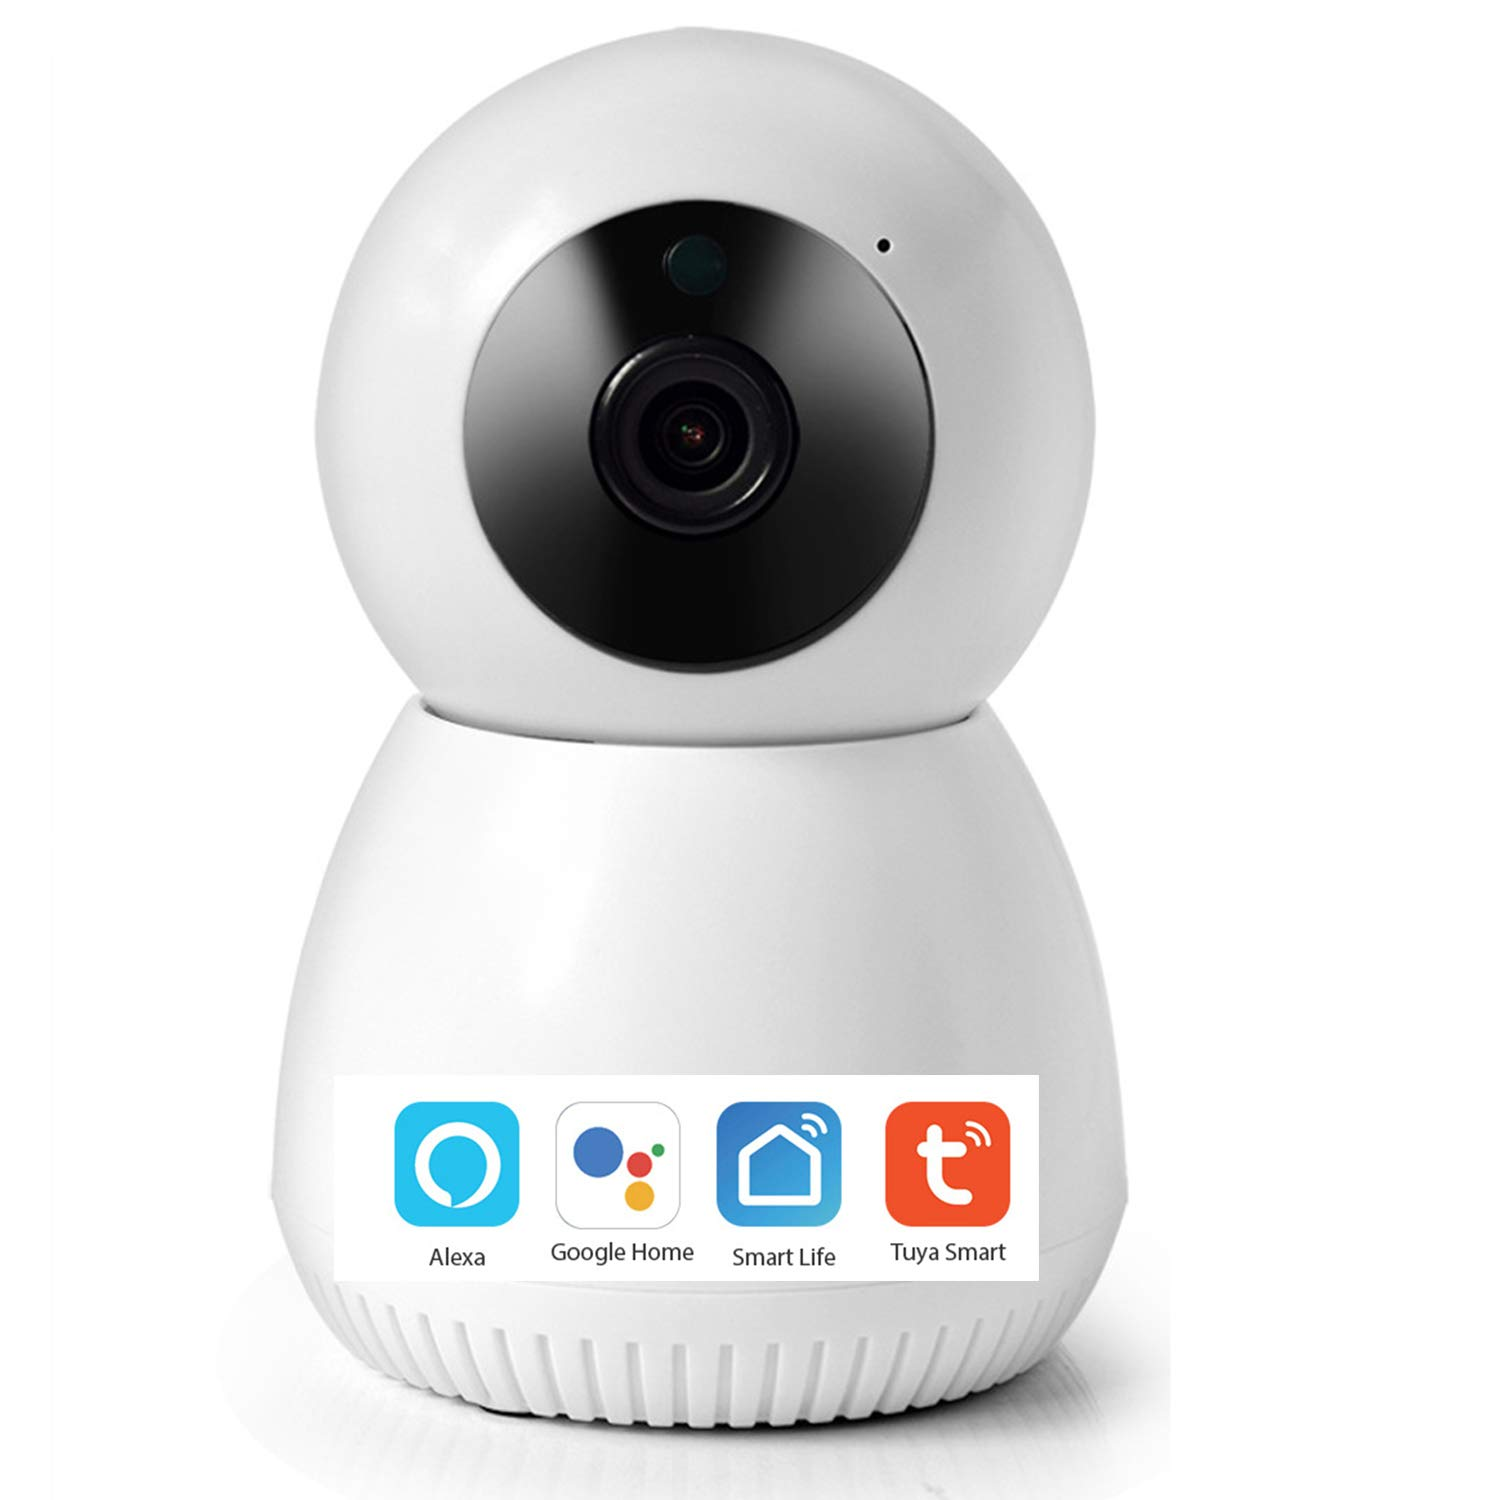 1080P Wireless Emergency Surveillance Camera Night Vision Smart Home Security Camera 2MP 2-Way Audio Motion Detection WiFi Baby Monitor Camera Works with Echo, Google Home Hub, Phone App(A, 1 Pack)